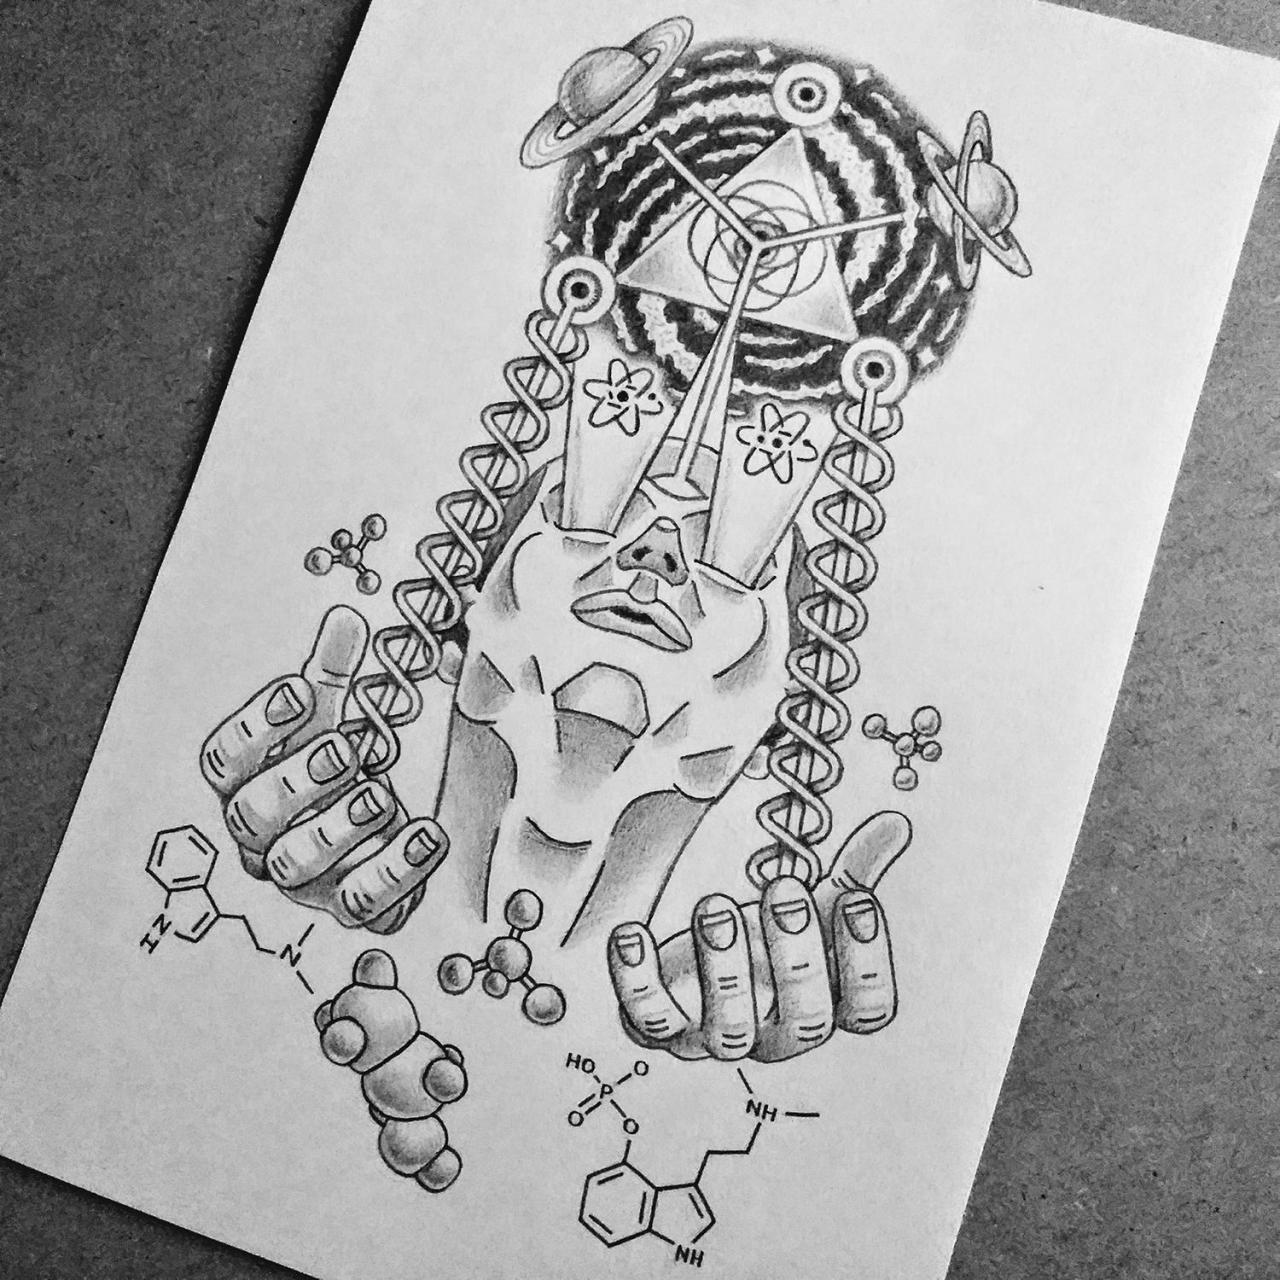 Cosmic Vision tattoo design I made